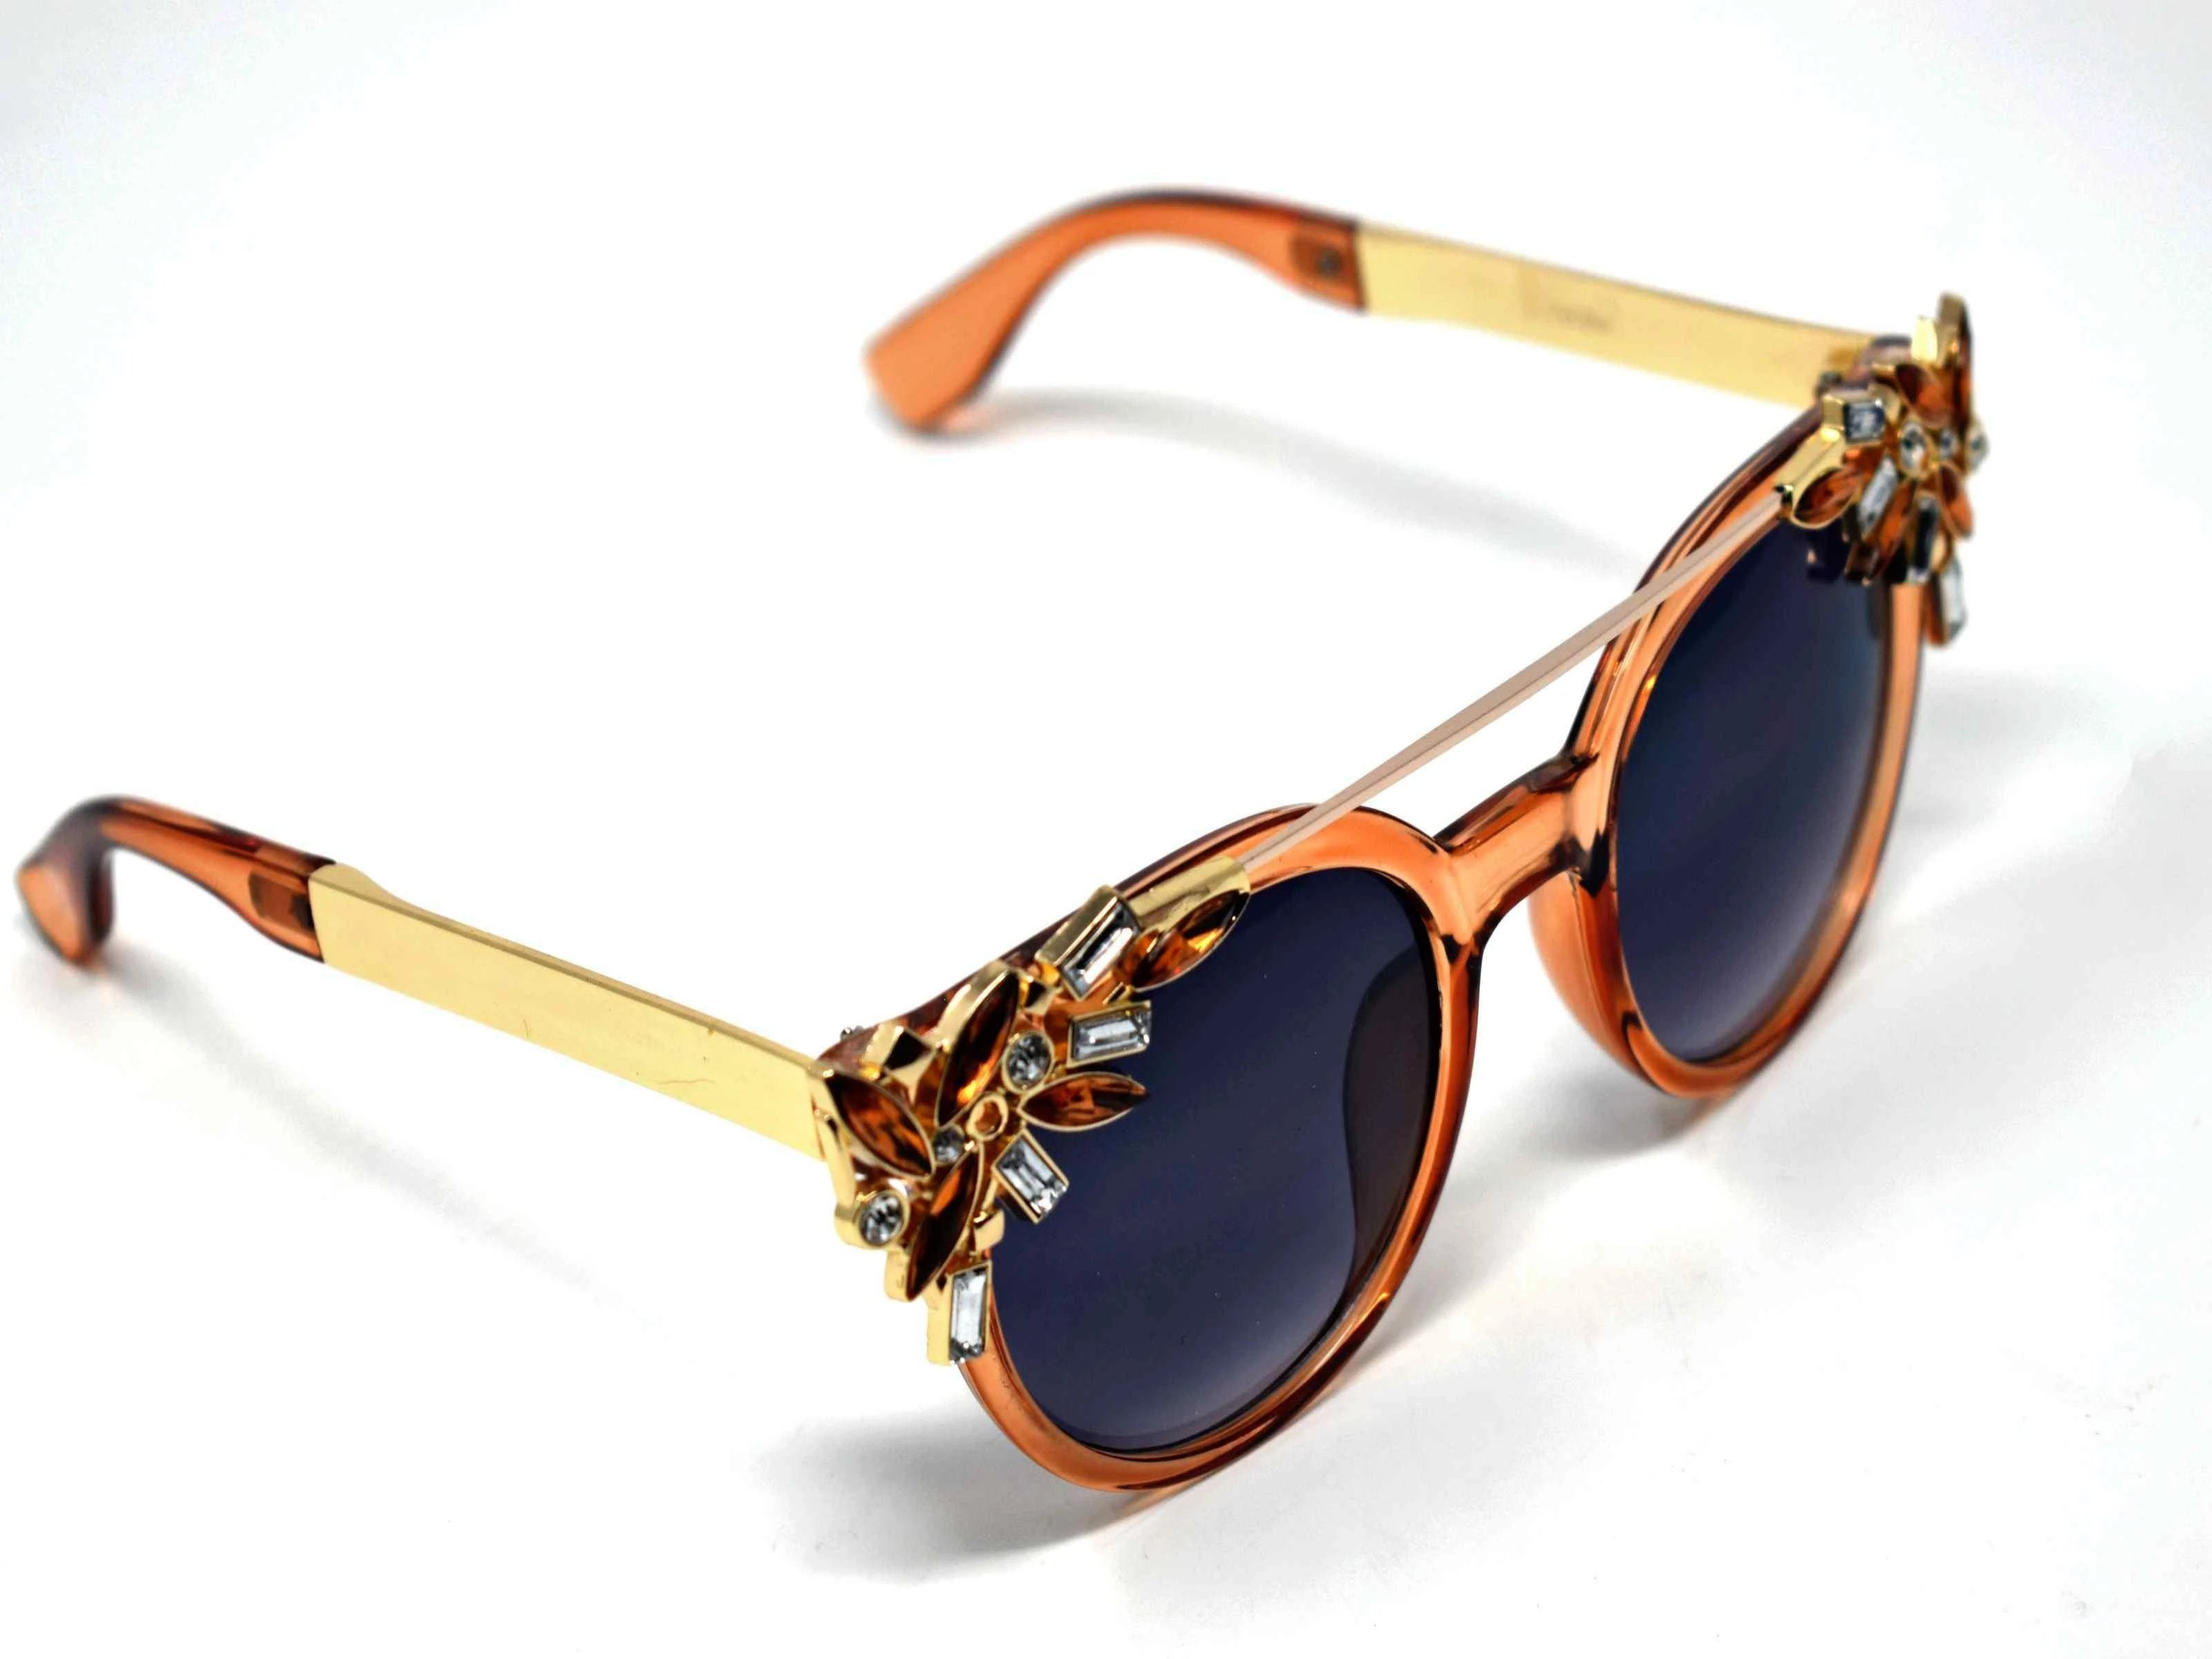 Trend setter and attention getter is what they will call you in these Pansy brown sunglasses with a sleek gold trim adorned in brown and clear gems, in a pantos style frame.